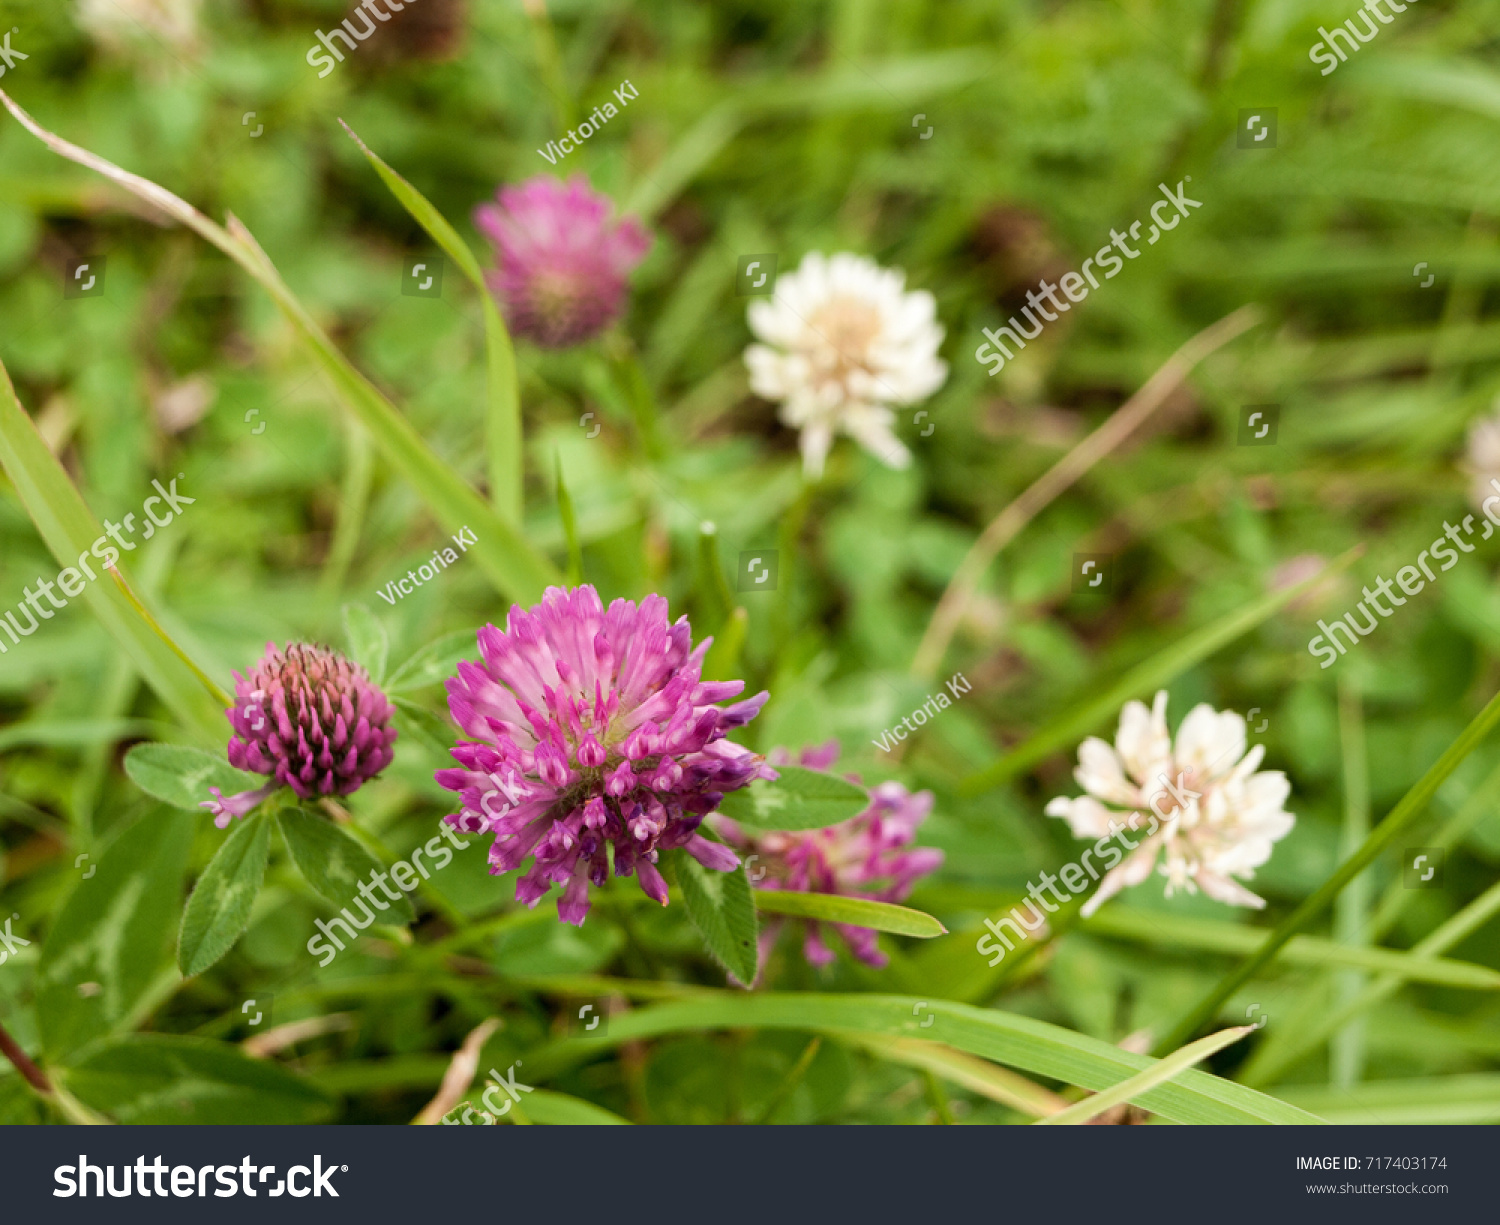 Purple Clover Flower On Green Lawn Stock Photo Edit Now 717403174